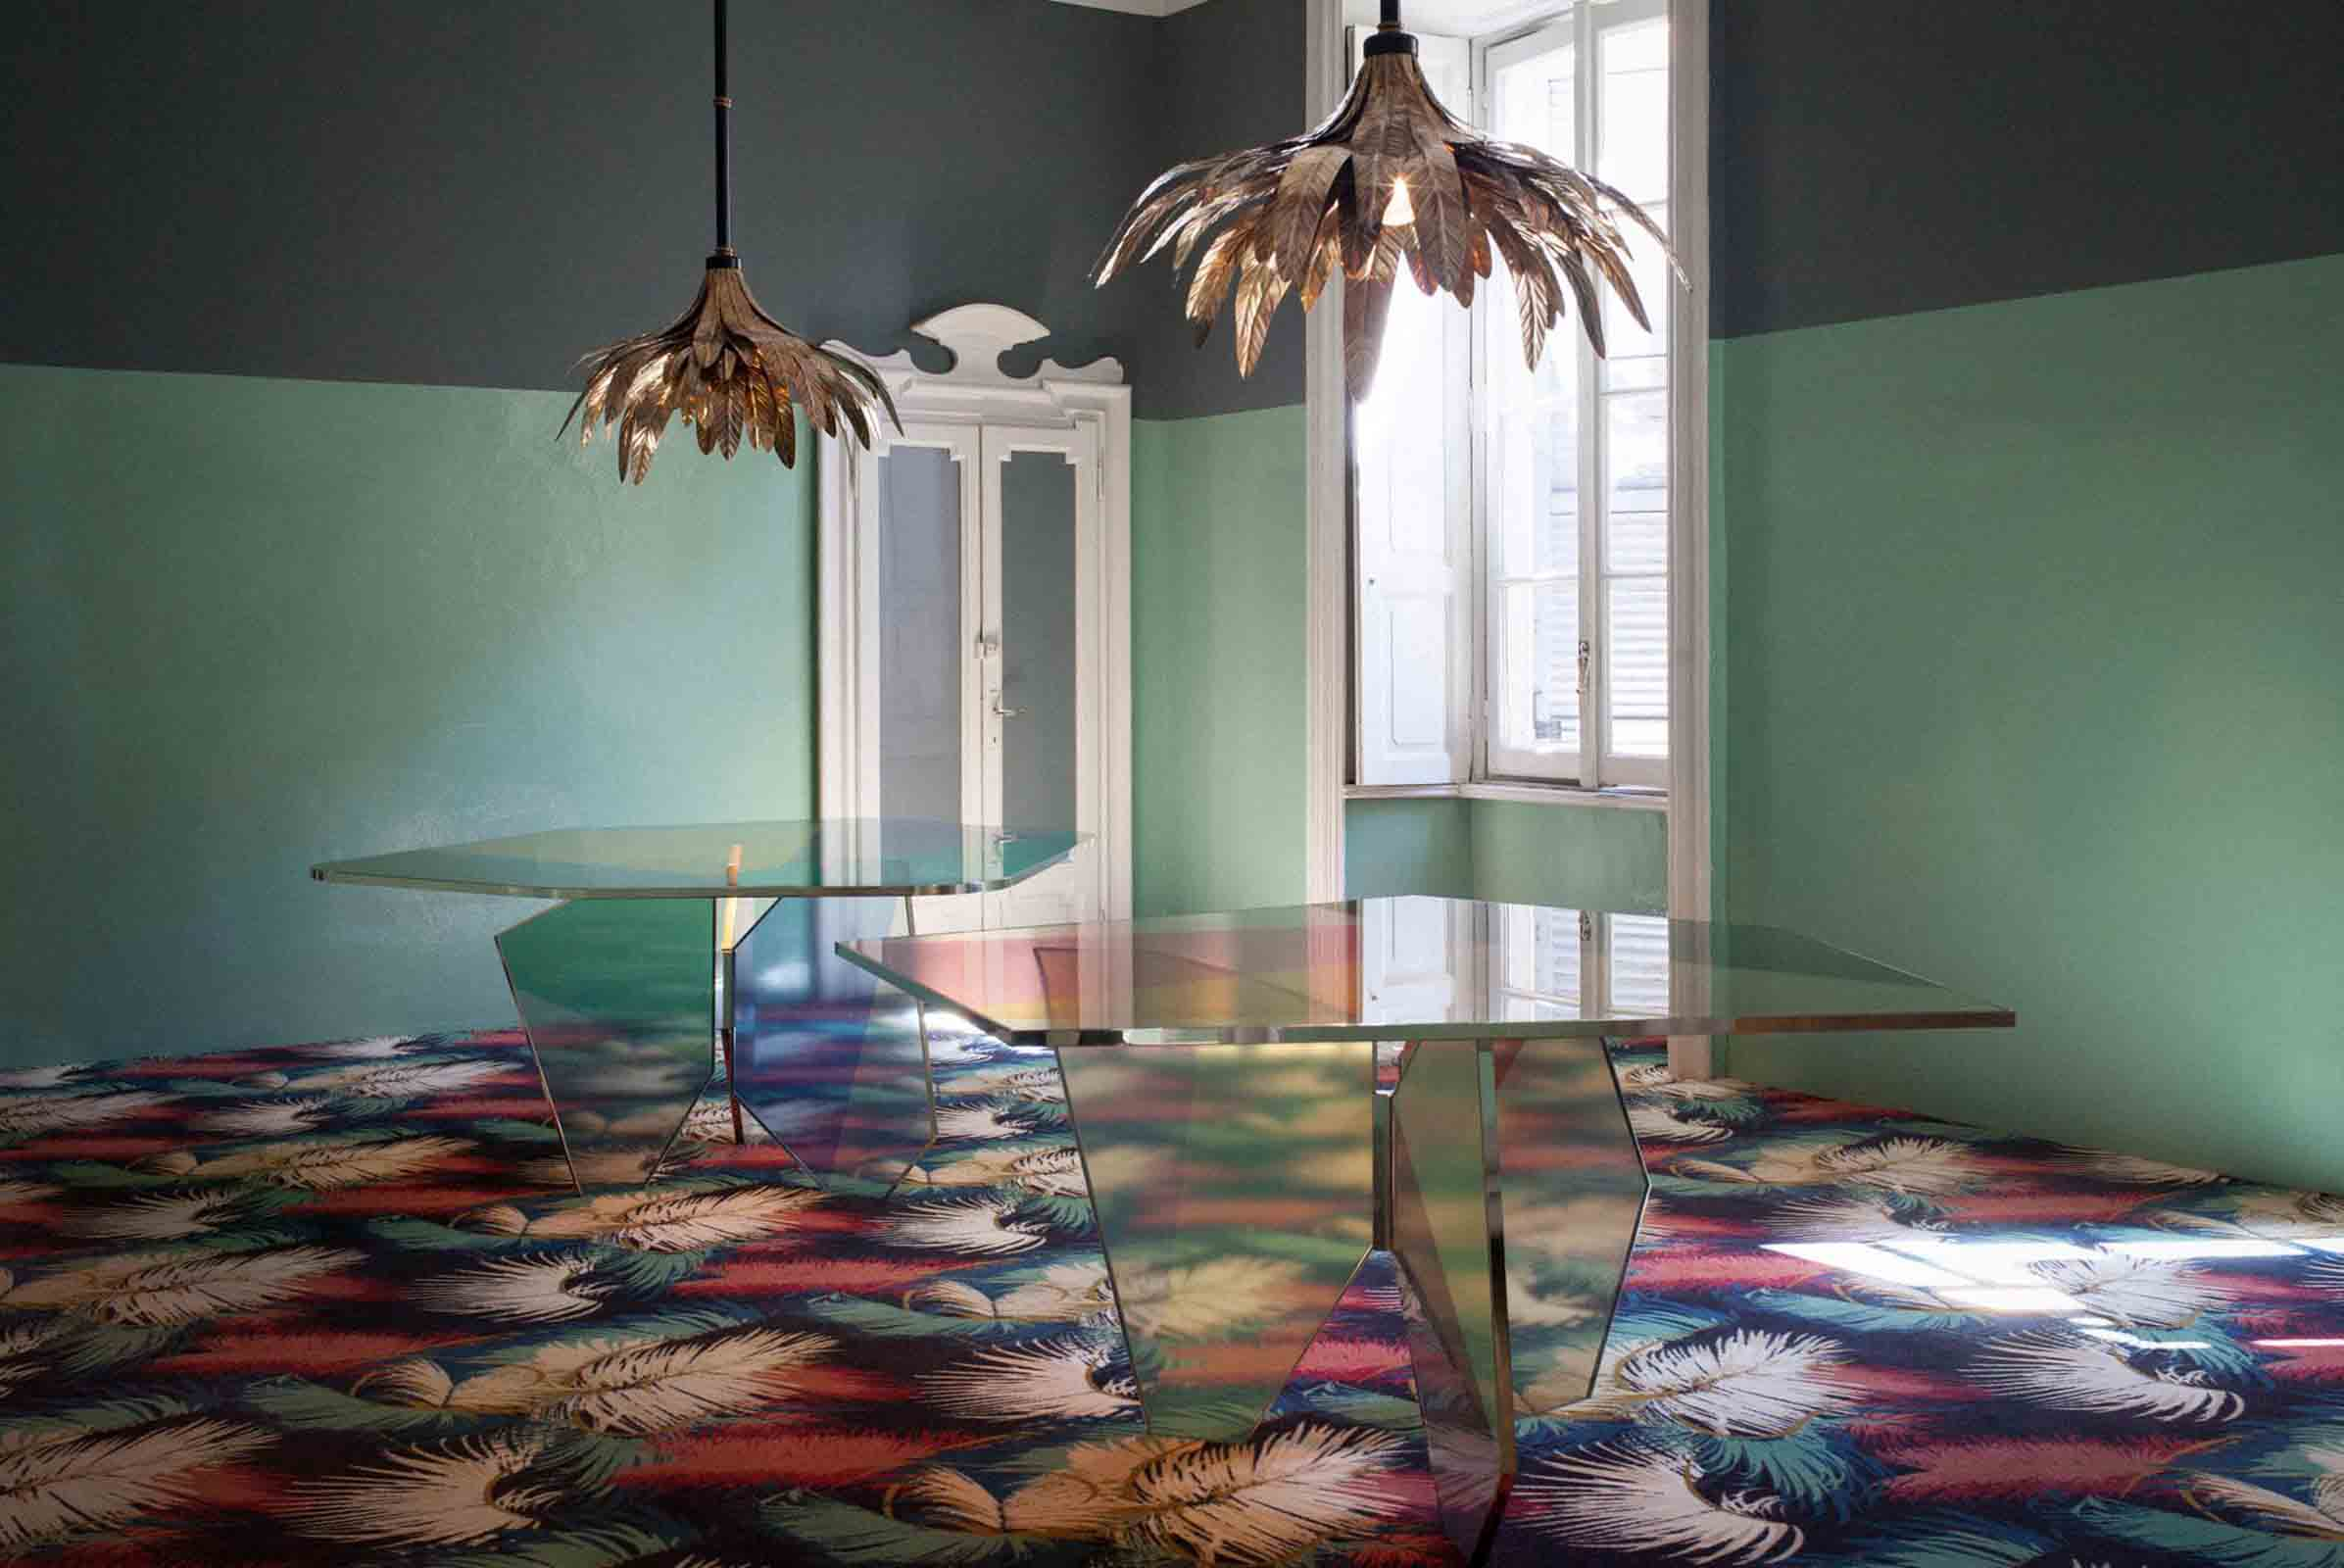 We absolutely fell for the 'Palmador' collection by Italian designers Dimore Studio